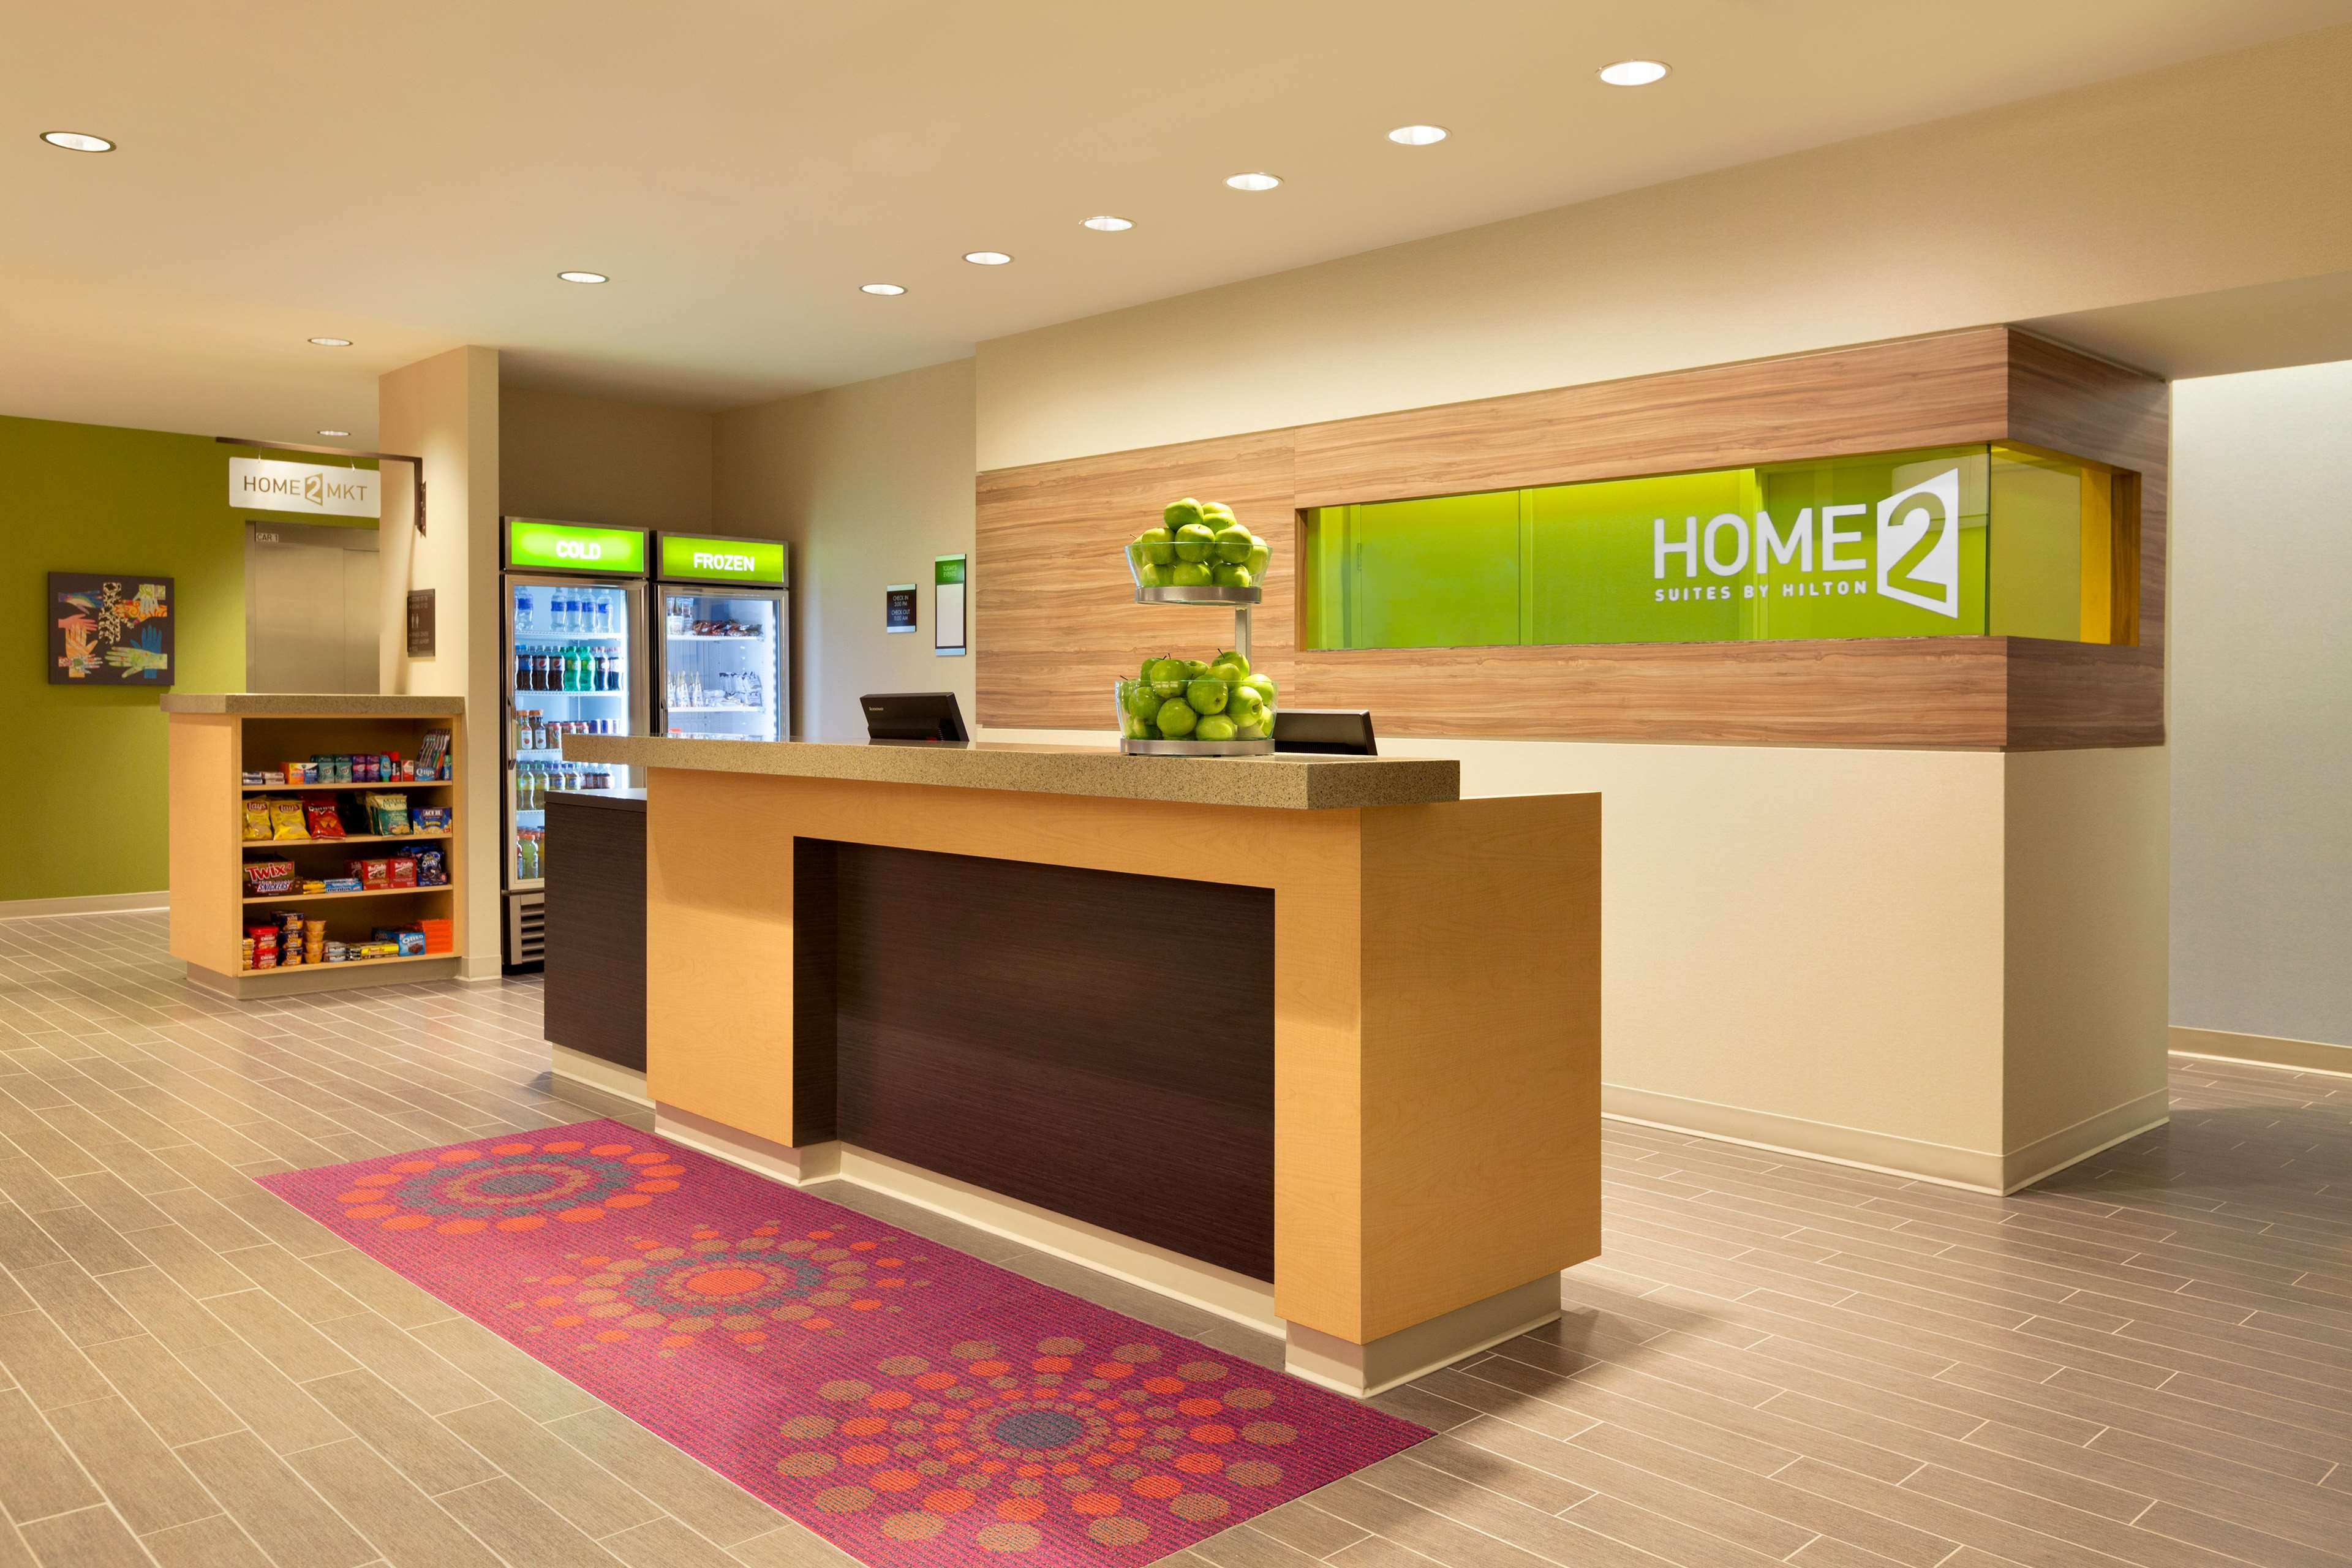 Home2 Suites by Hilton West Edmonton, Alberta, Canada à Edmonton: Reception